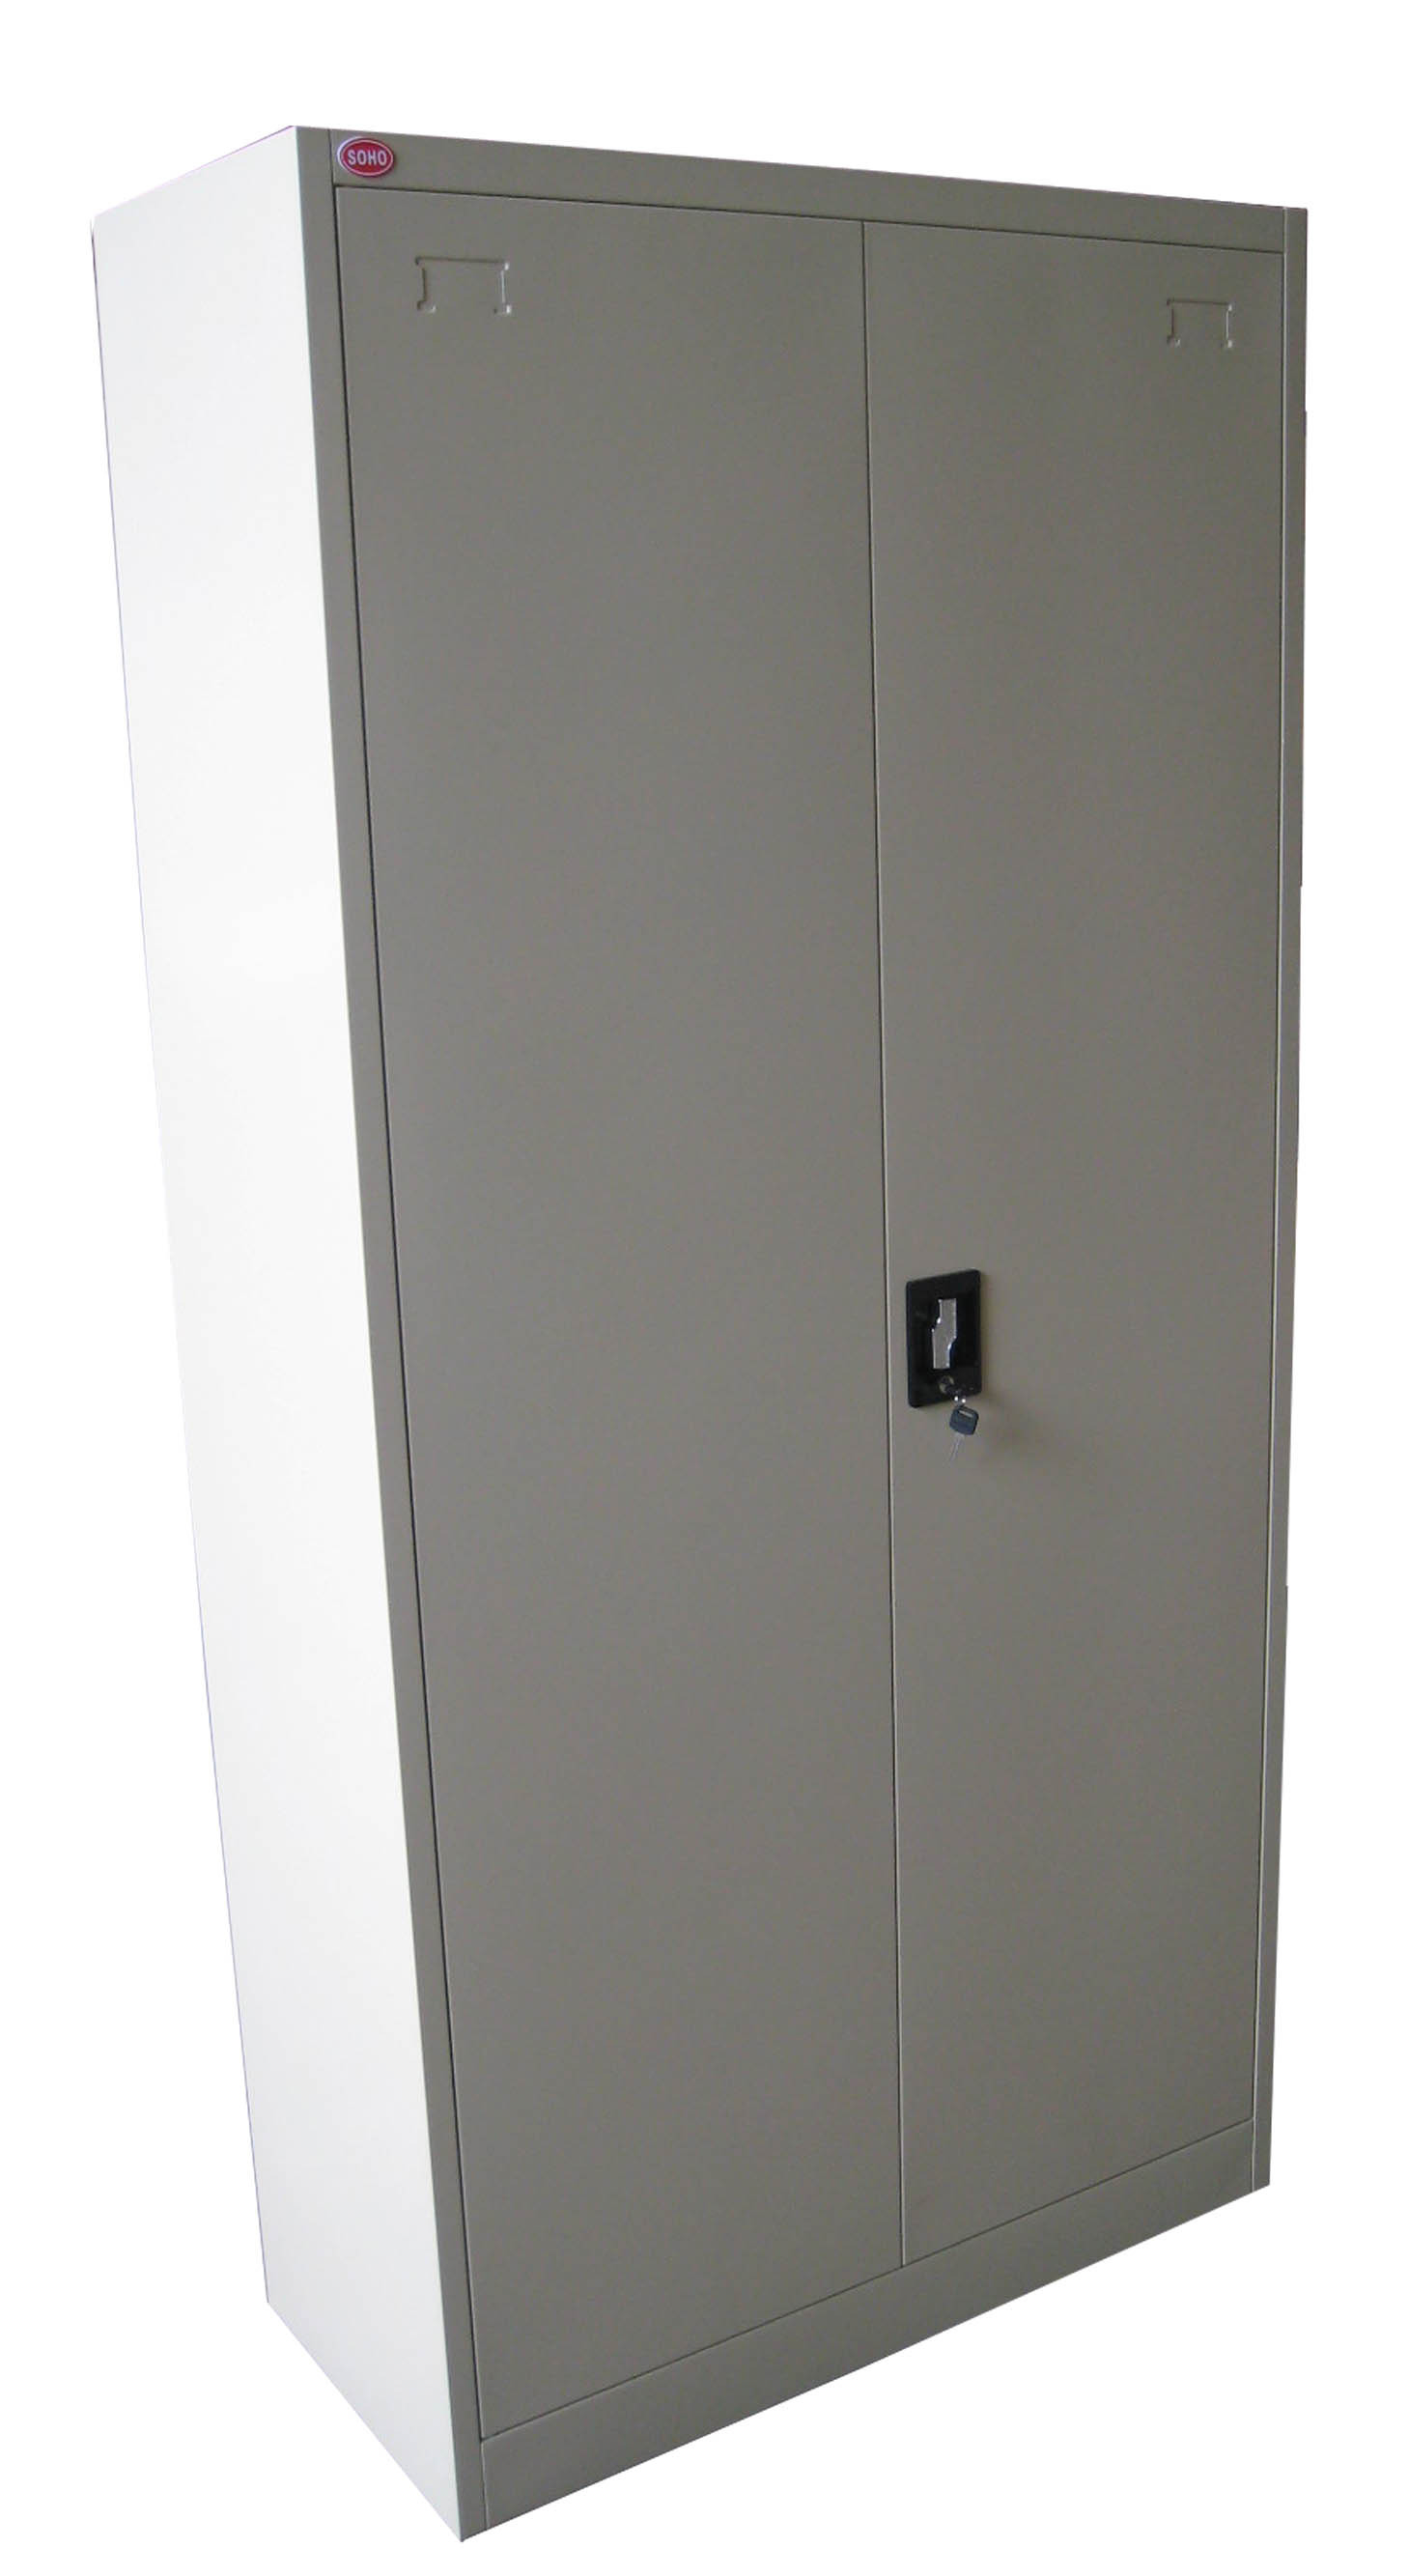 2 Door Filing Cabinet Awesome soho Portugal 2doors Storage Filing Cabinet W Lock 4